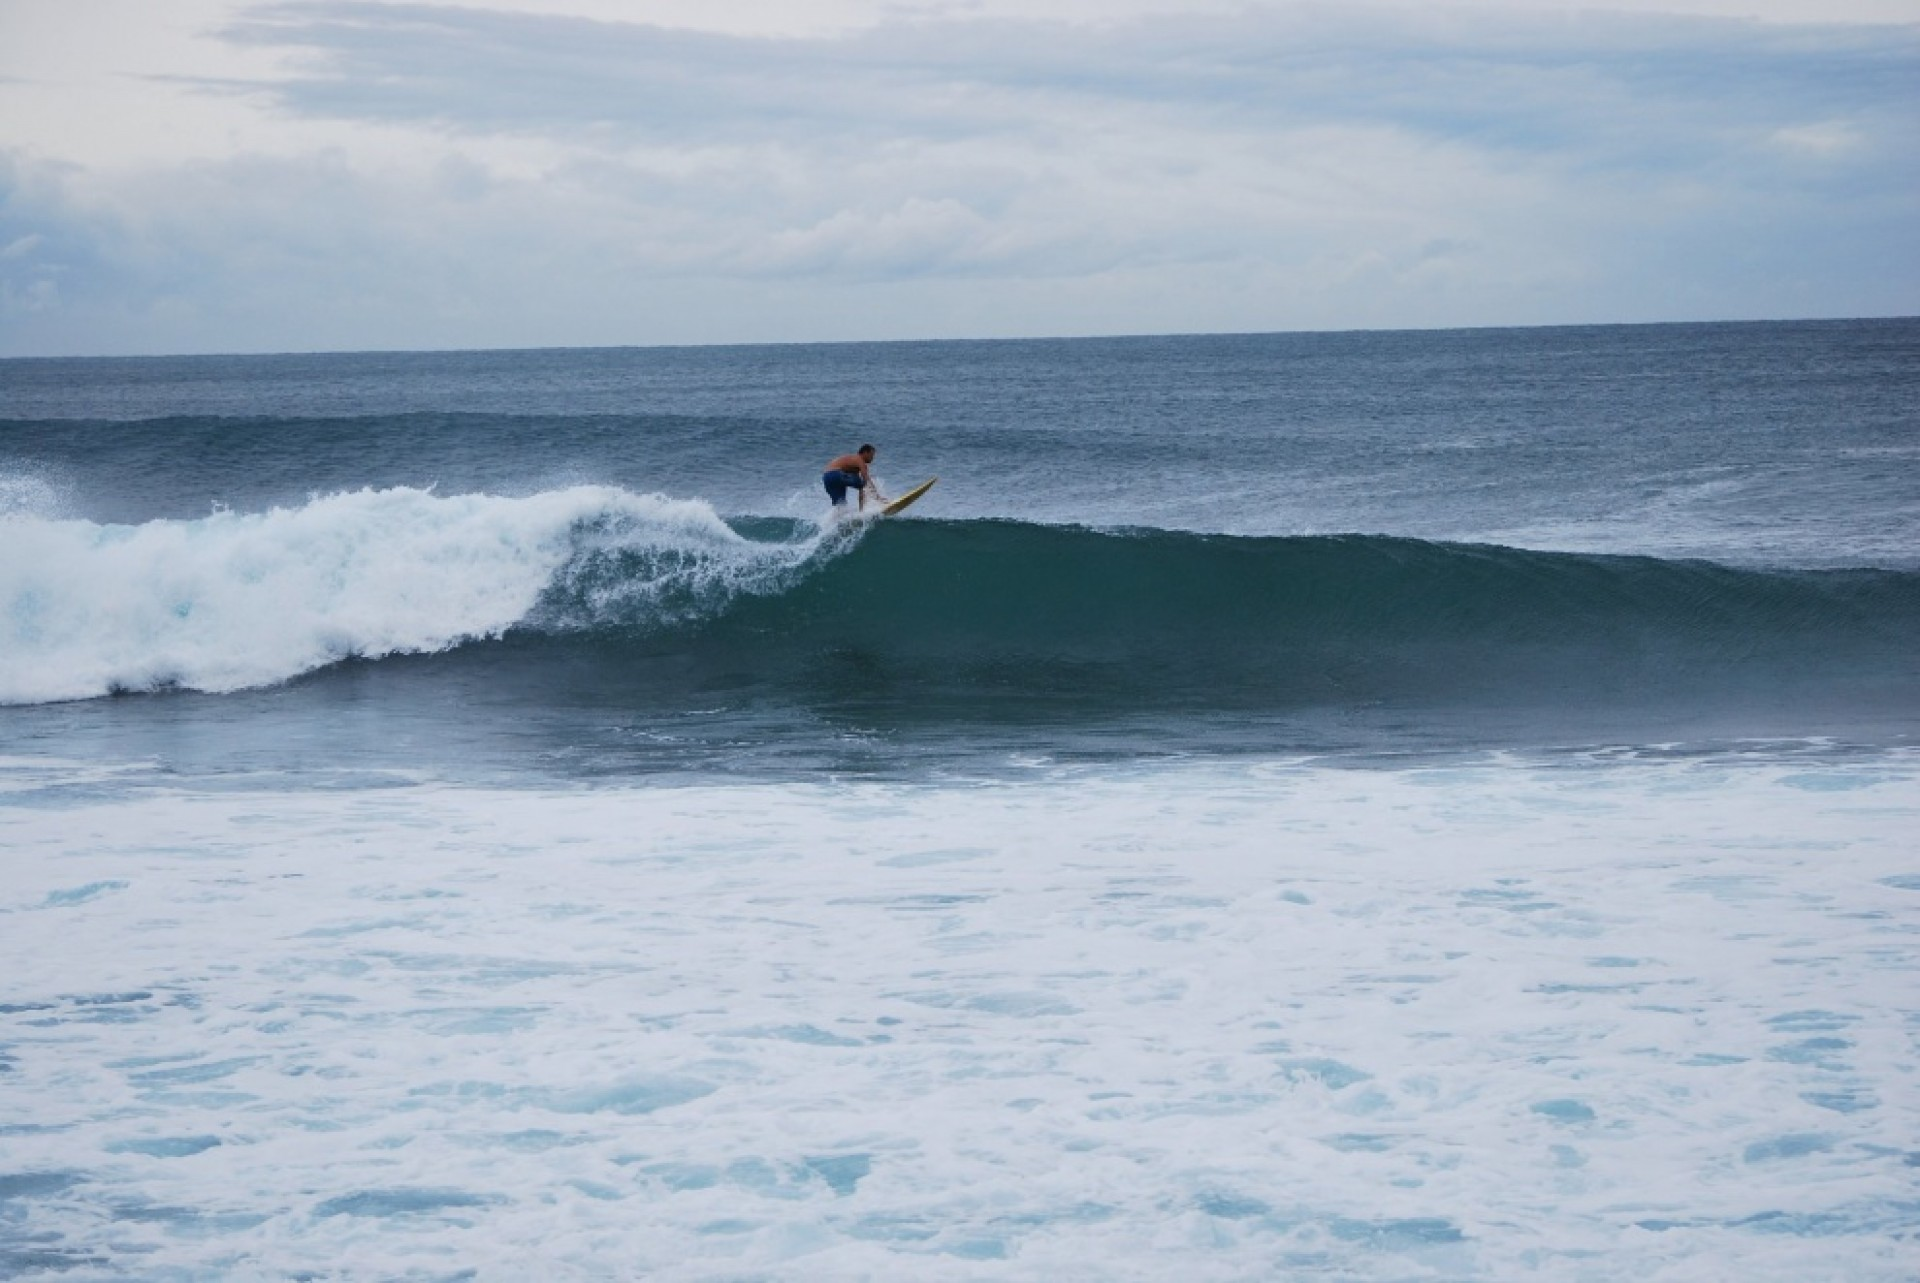 Thad Agee's photo of Off-The-Wall